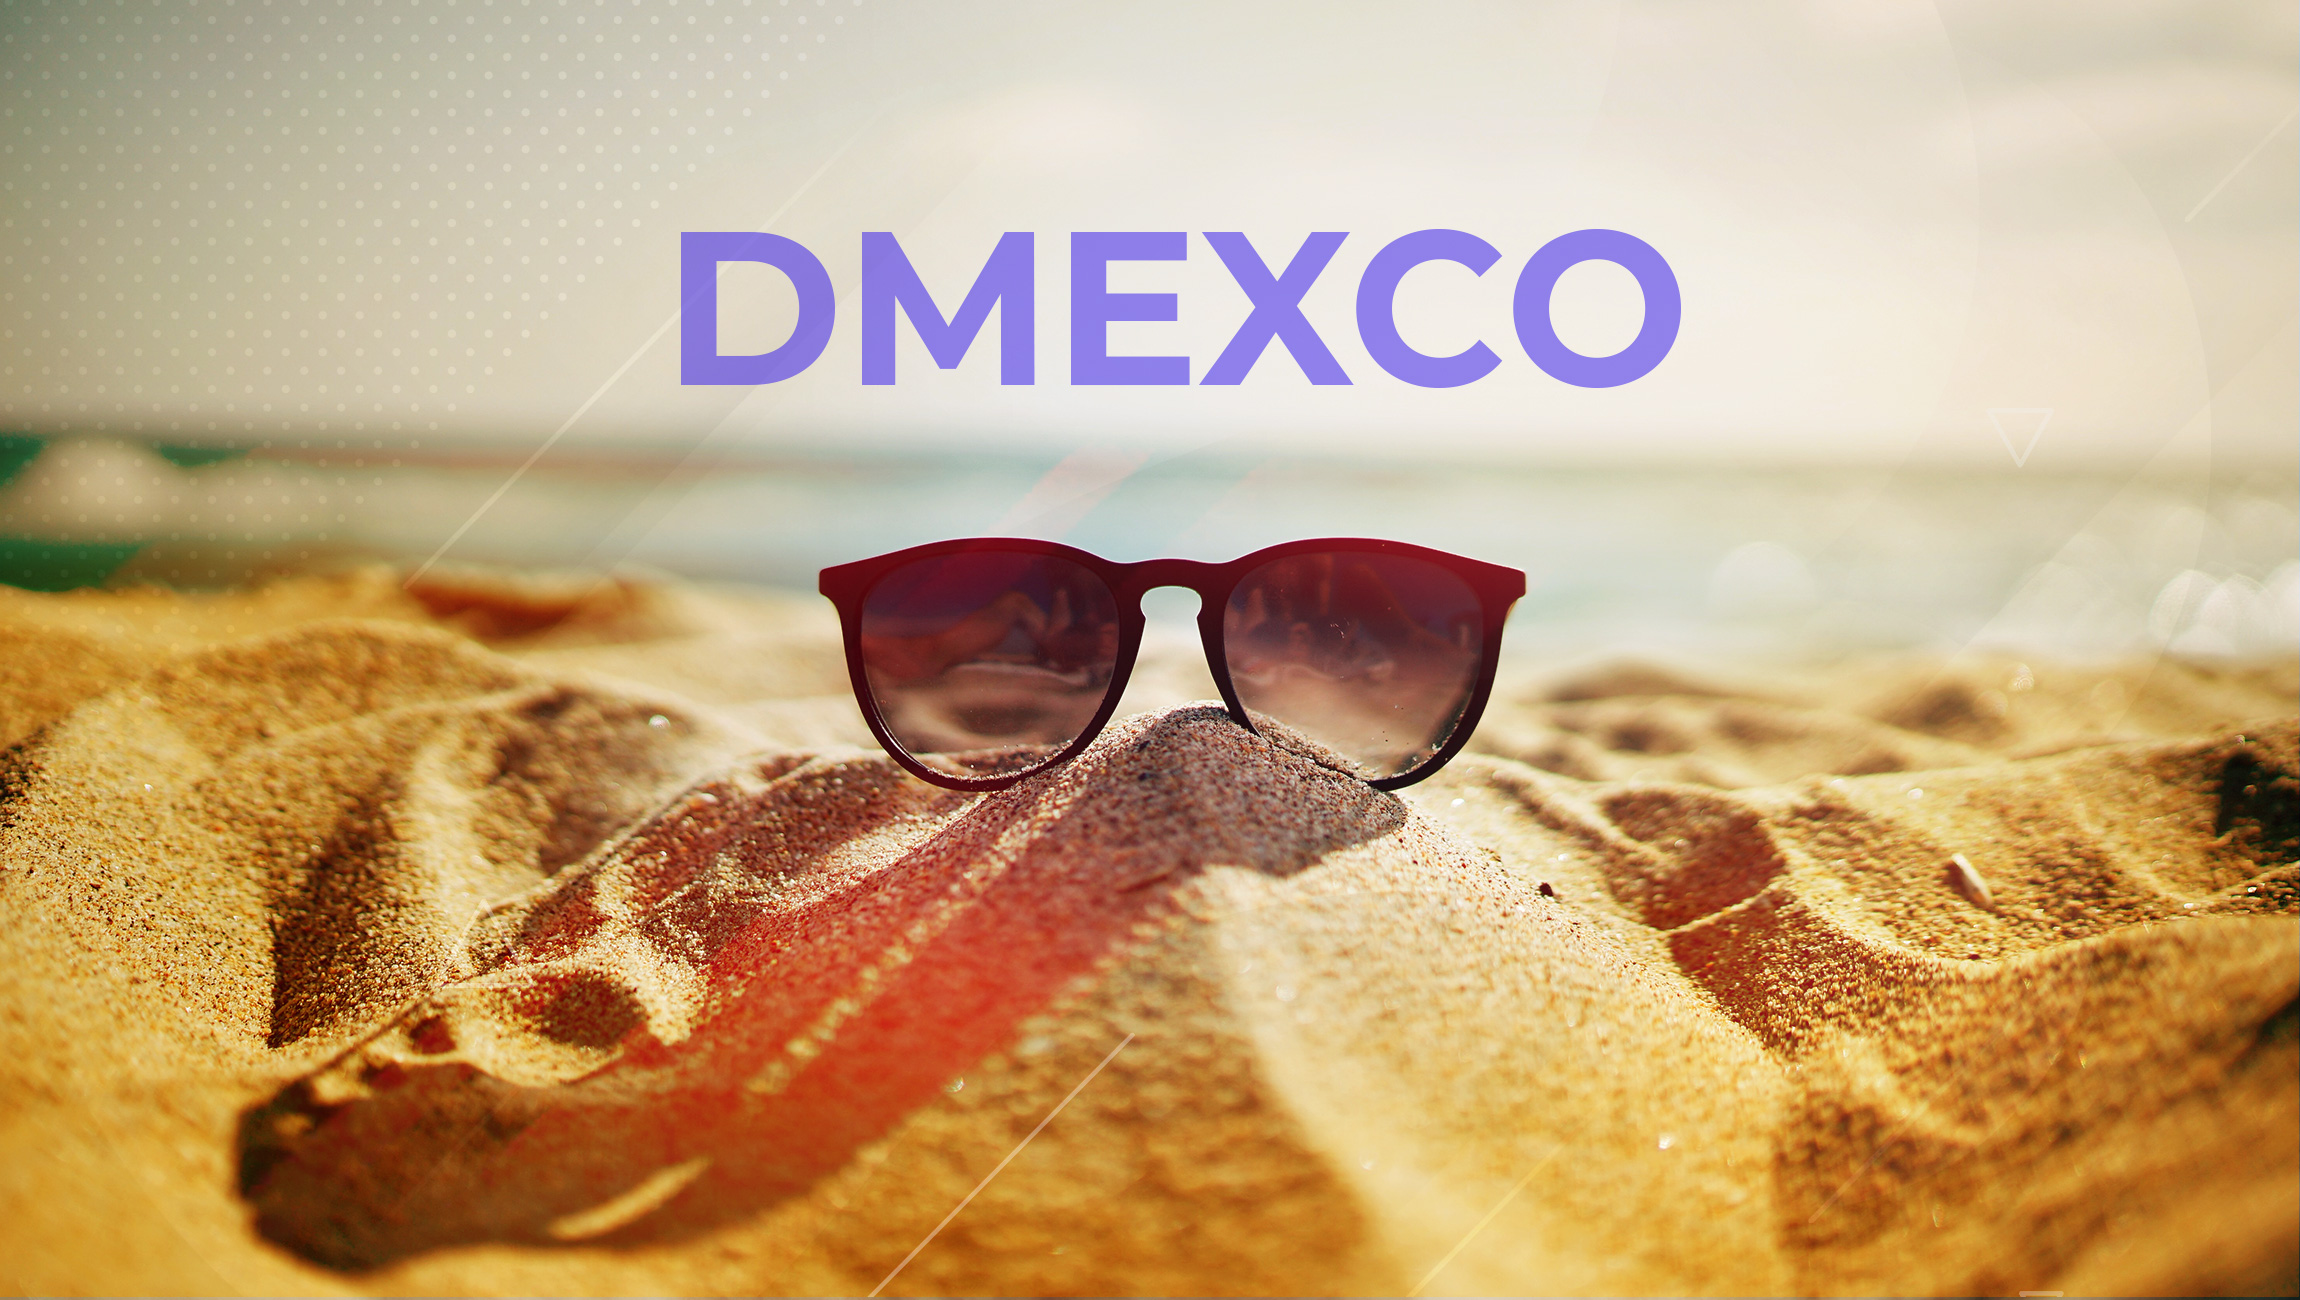 DMEXCO 2019: How Technologies Help to Promote Trust